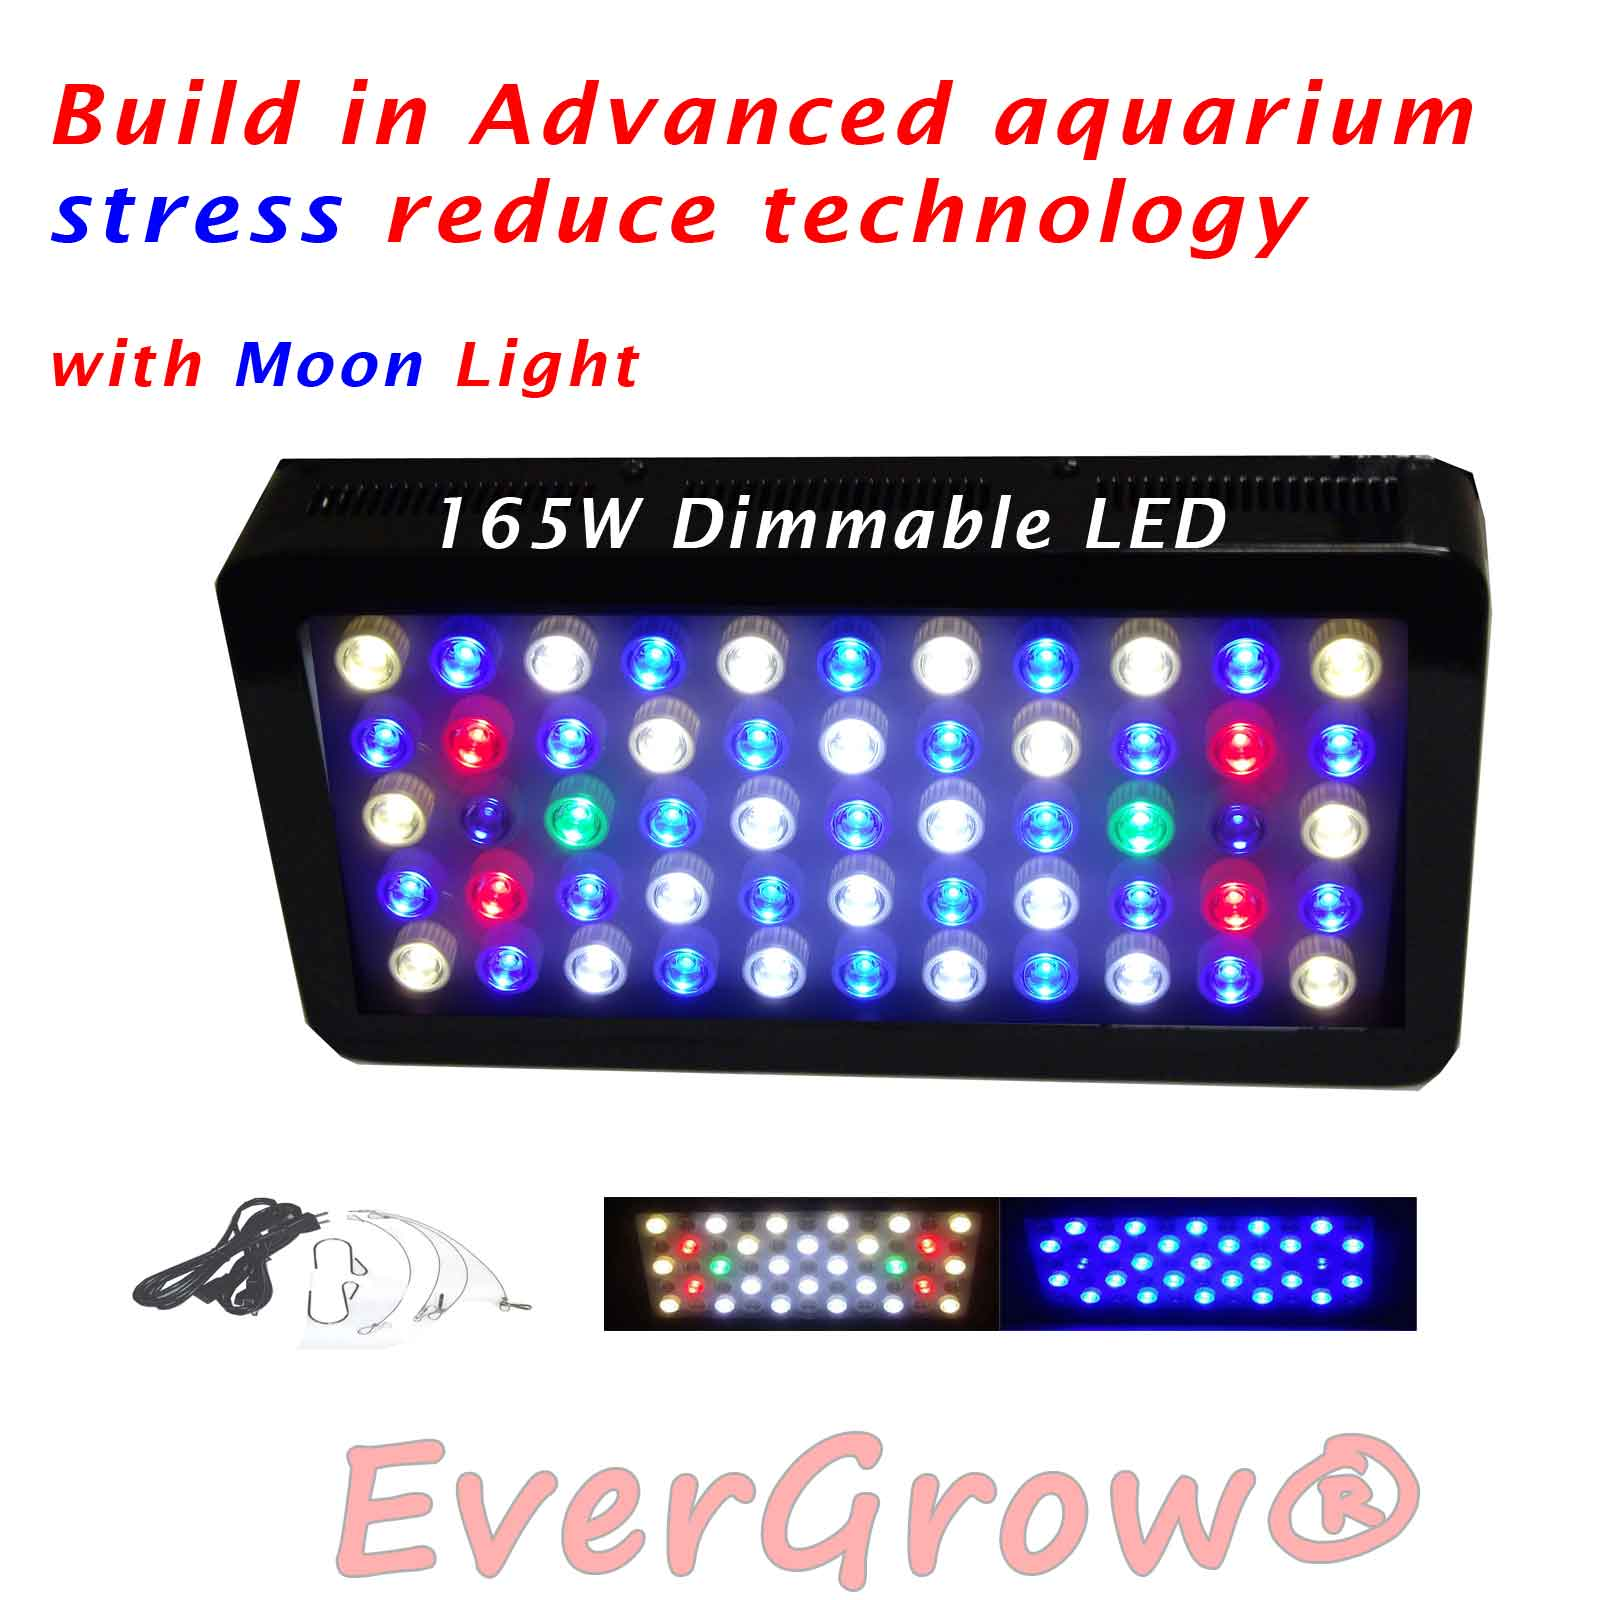 EVERGROW Dimmable 165W LED Aquarium Light Full Spectrum for Grow Coral Reef Fish Tank (LED-FT-165W-D-COLOR) by